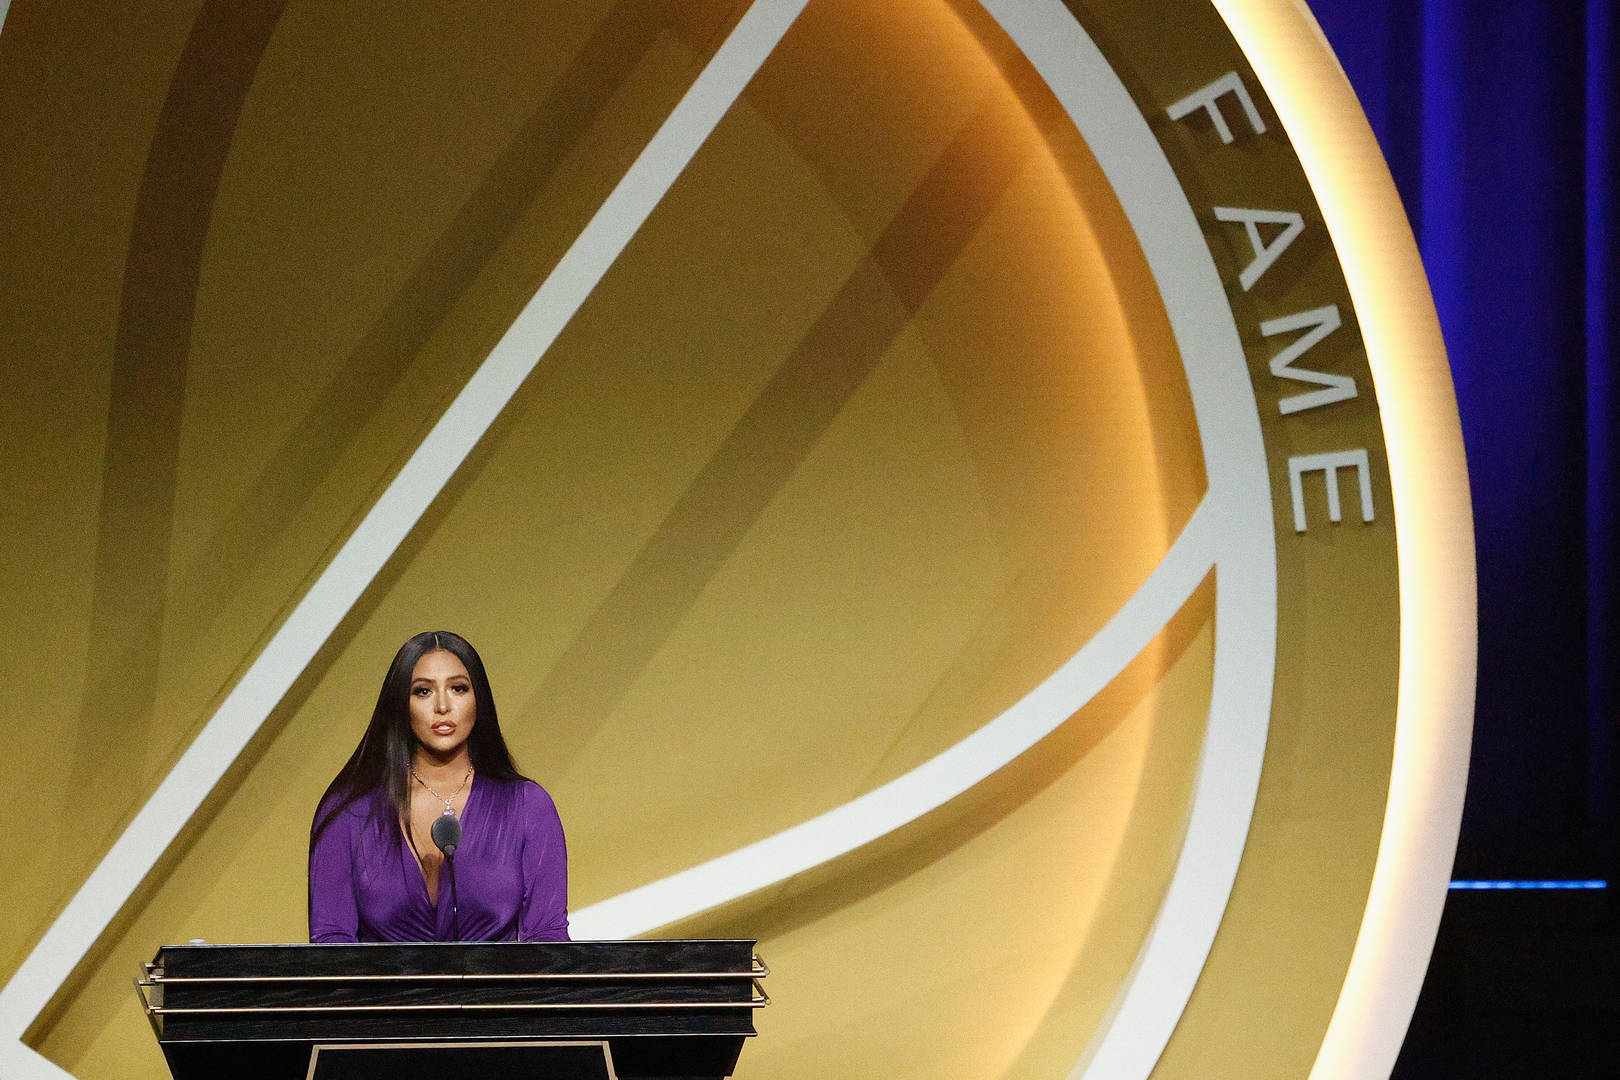 anessa Bryant speaks on behalf of Class of 2020 inductee, Kobe Bryant during the 2021 Basketball Hall of Fame Enshrinement Ceremony at Mohegan Sun Arena on May 15, 2021 in Uncasville, Connecticut. Kobe Bryant tragically died in a California helicopter crash on Jan 26, 2020.